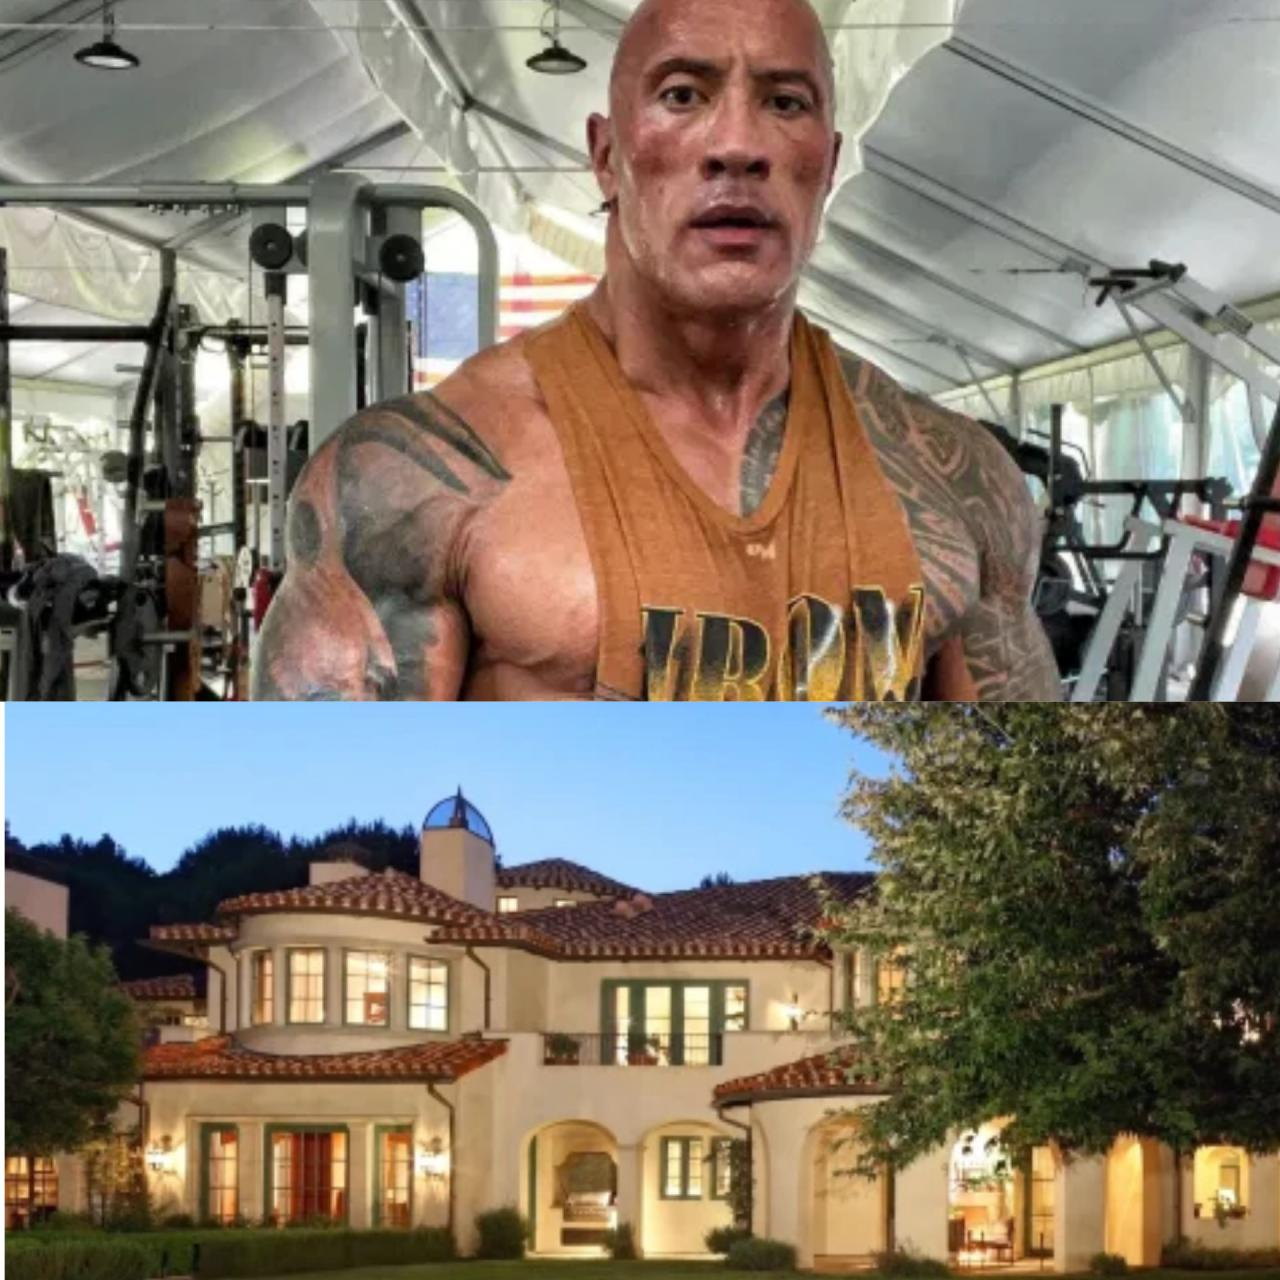 The Rock buys .8m mansion with full-size tennis court, a baseball pitch, guest house, movie theater & music studio (Photos)